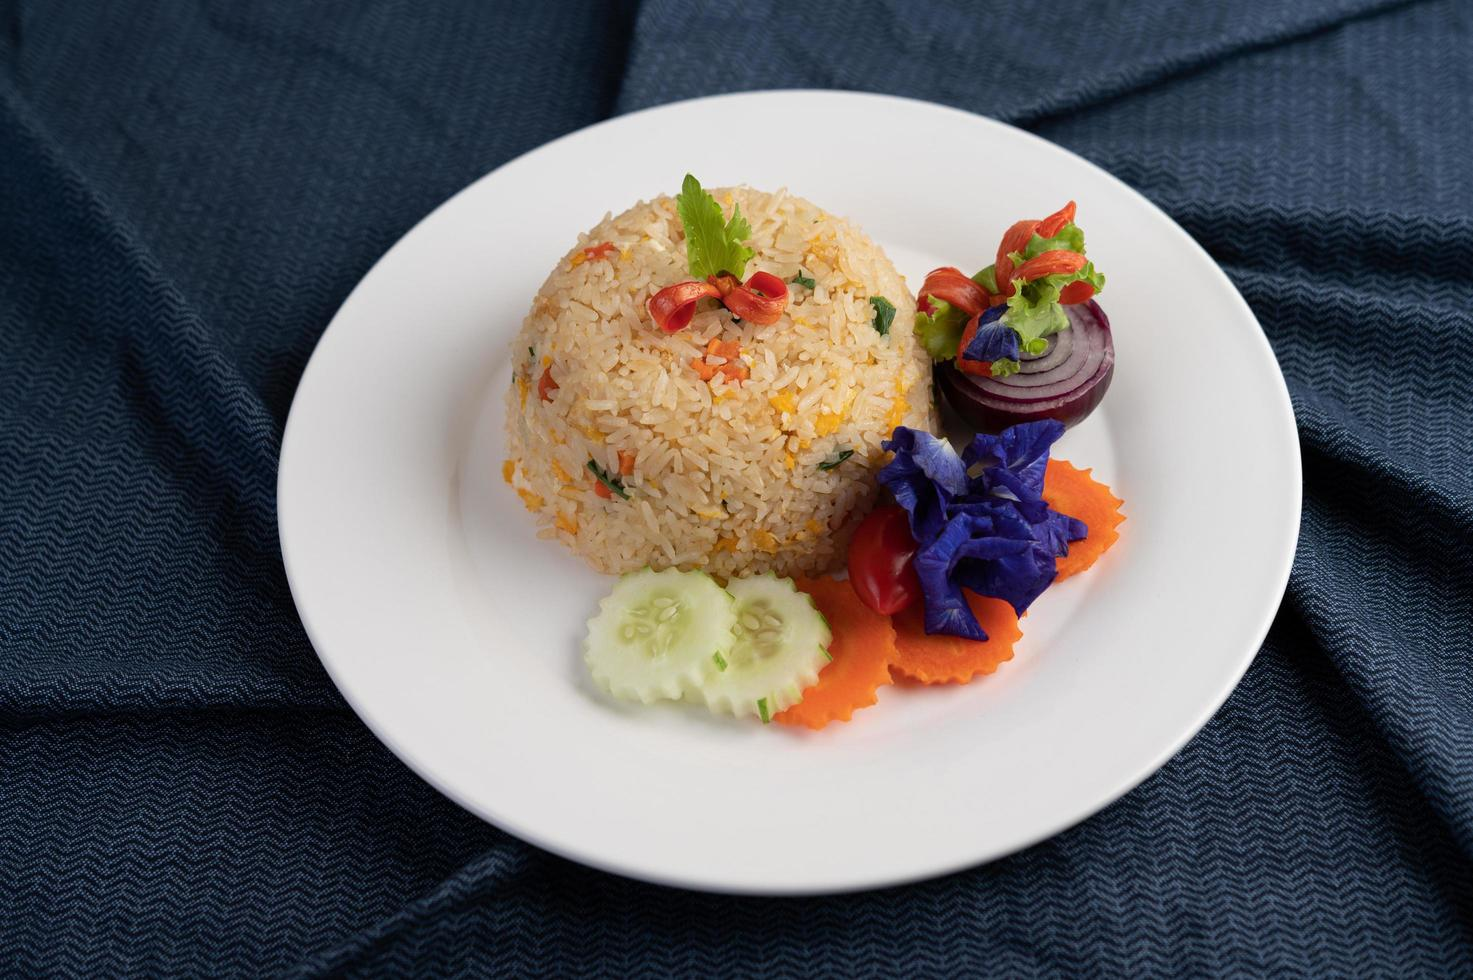 Egg fried rice on a white plate with wrinkled fabric photo